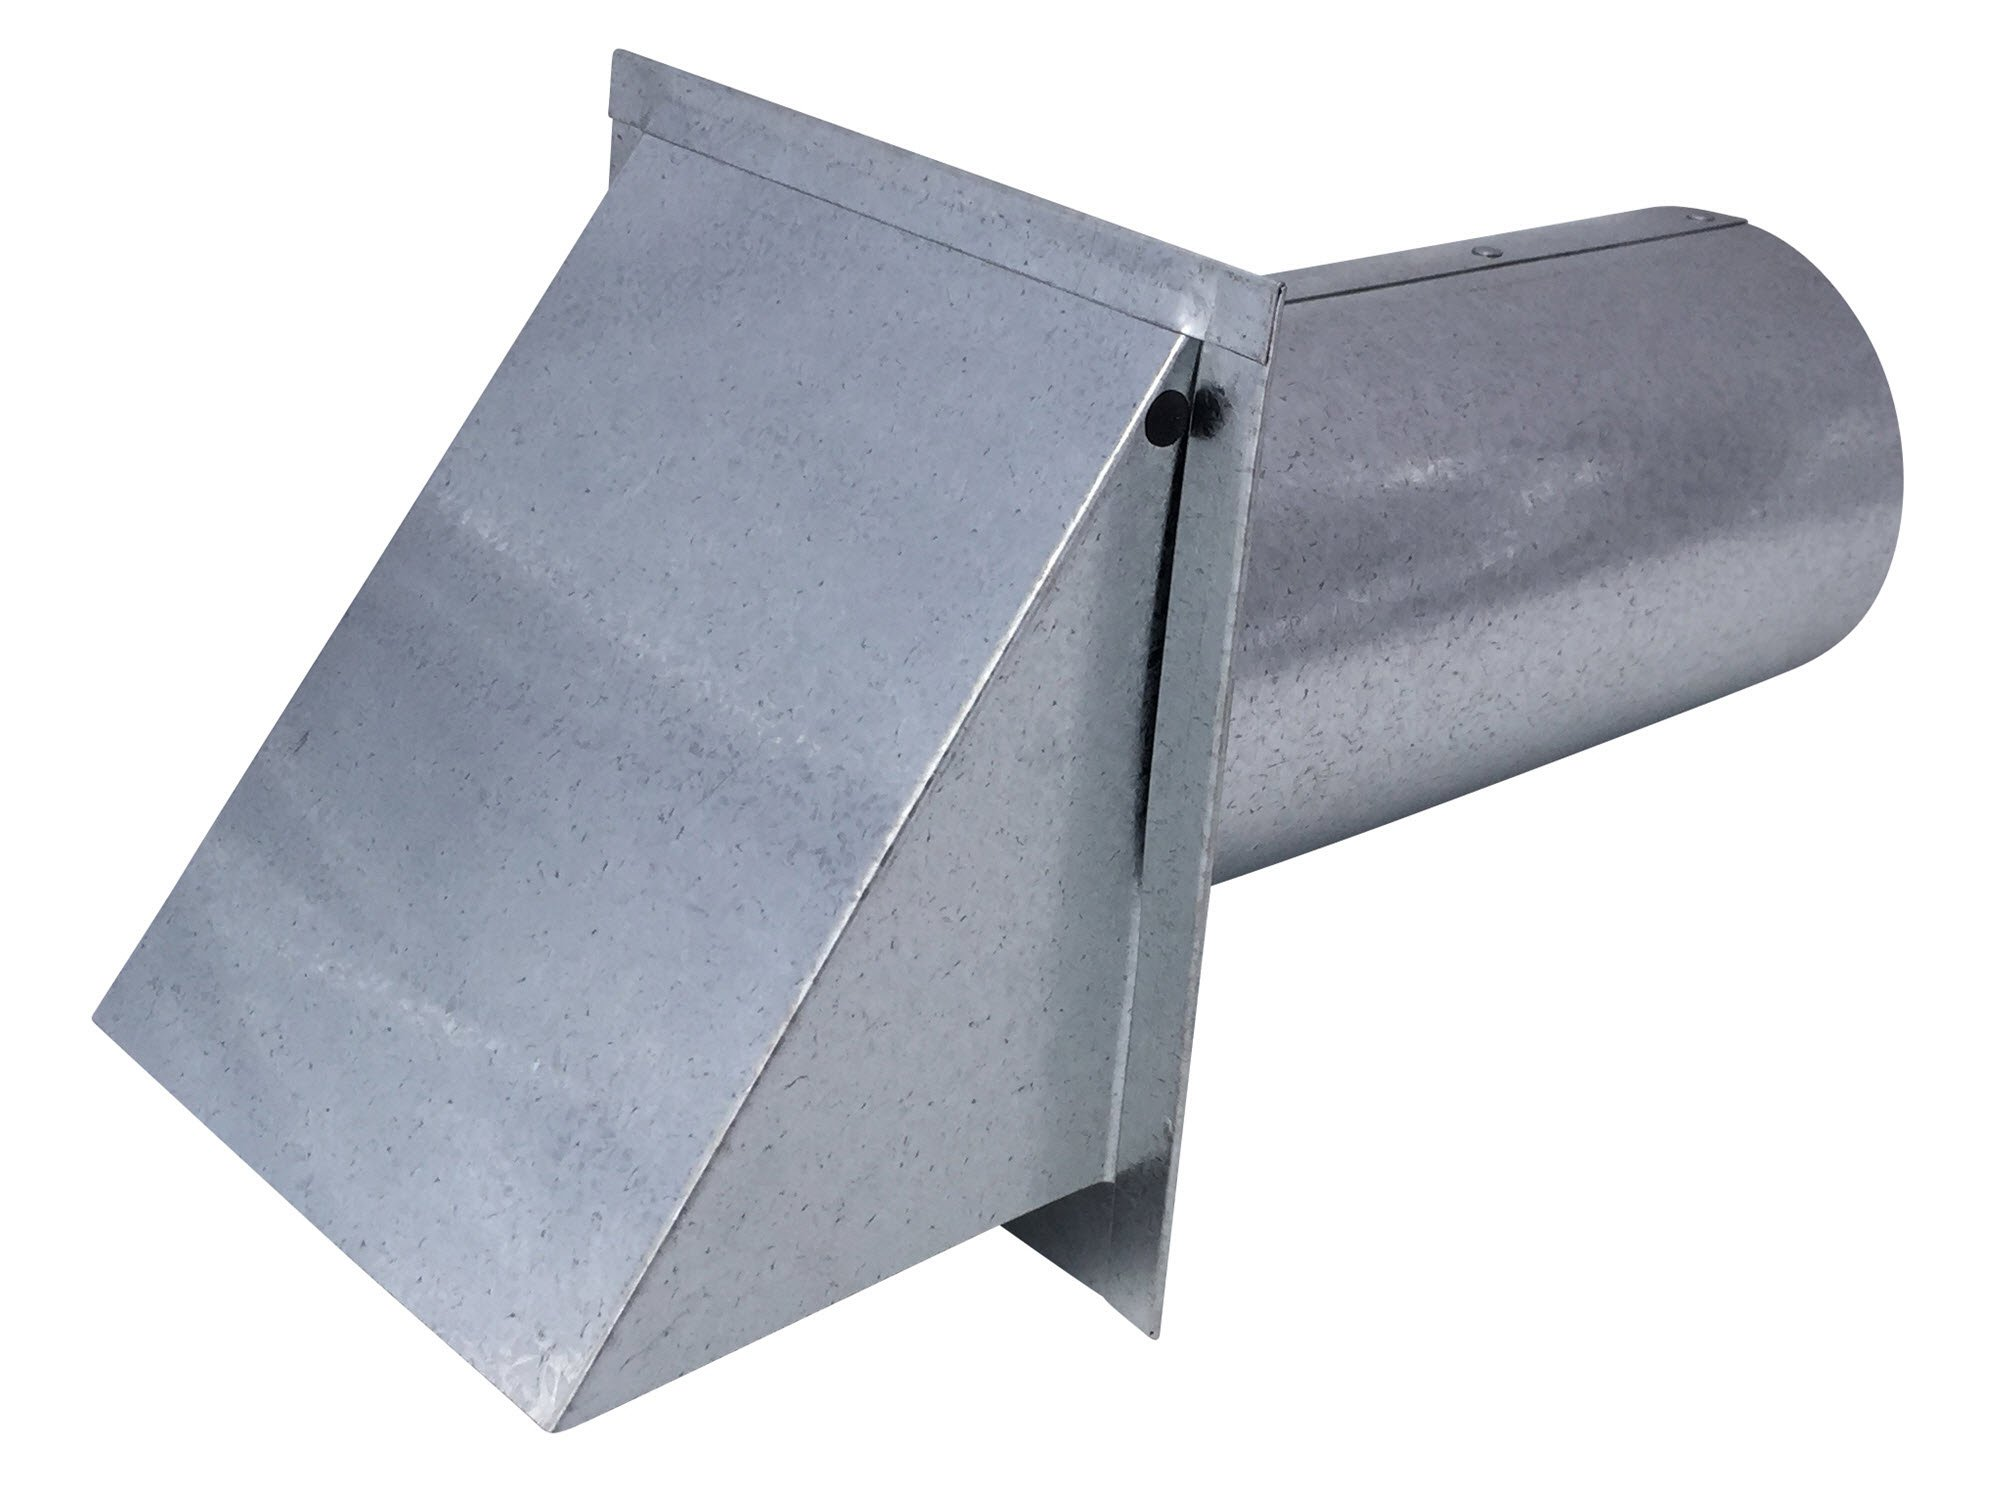 5 Inch Wall Vent Galvanized Damper Only (5 Inch Diameter) - Vent Works